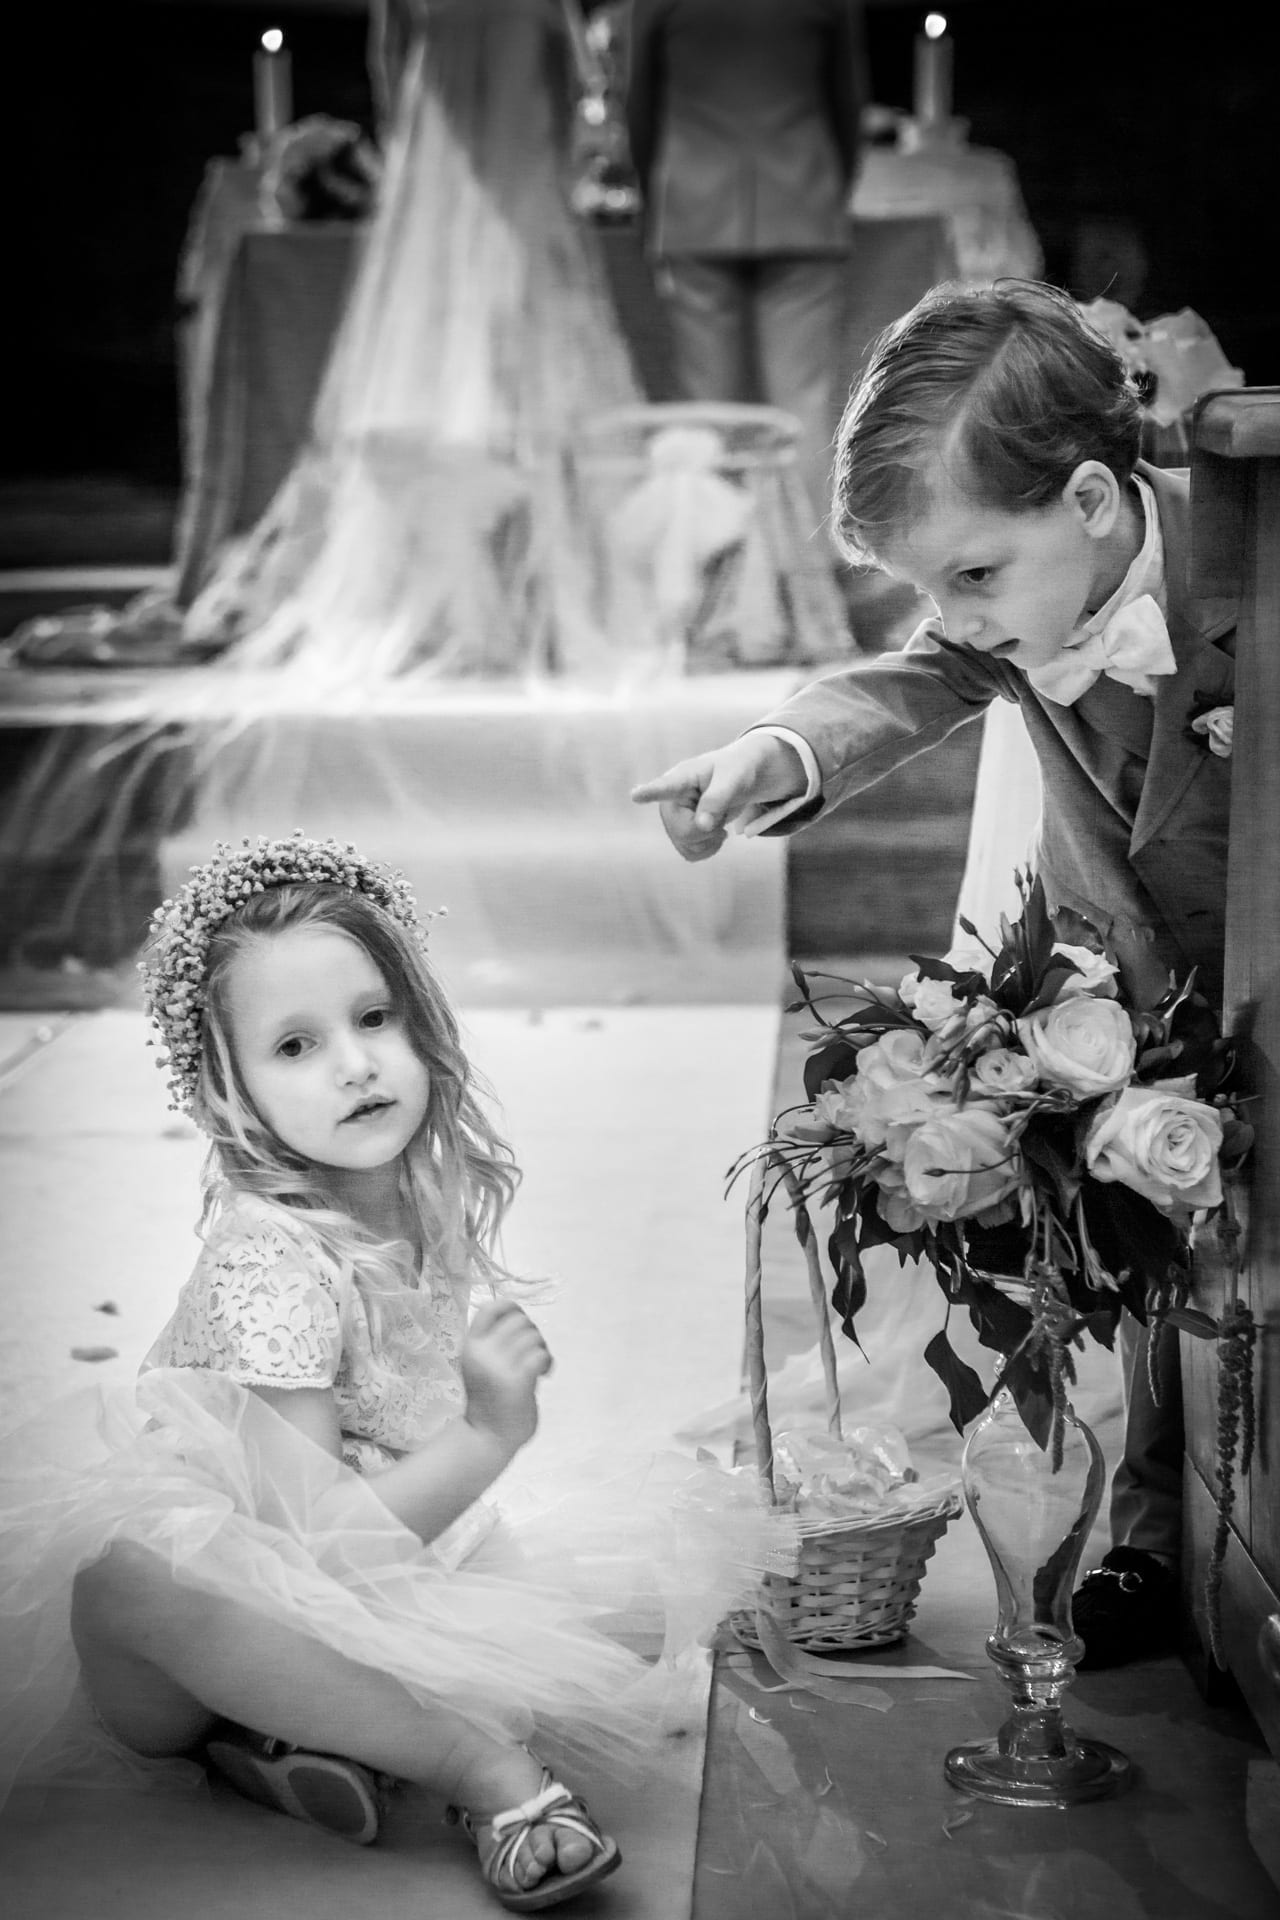 https://s3-eu-central-1.amazonaws.com/righiphotography-com/wp-content/uploads/2020/02/02183124/Wedding-Photo-No-Pose-Studio-Fotografico-Righi-RIGHI-120.jpg